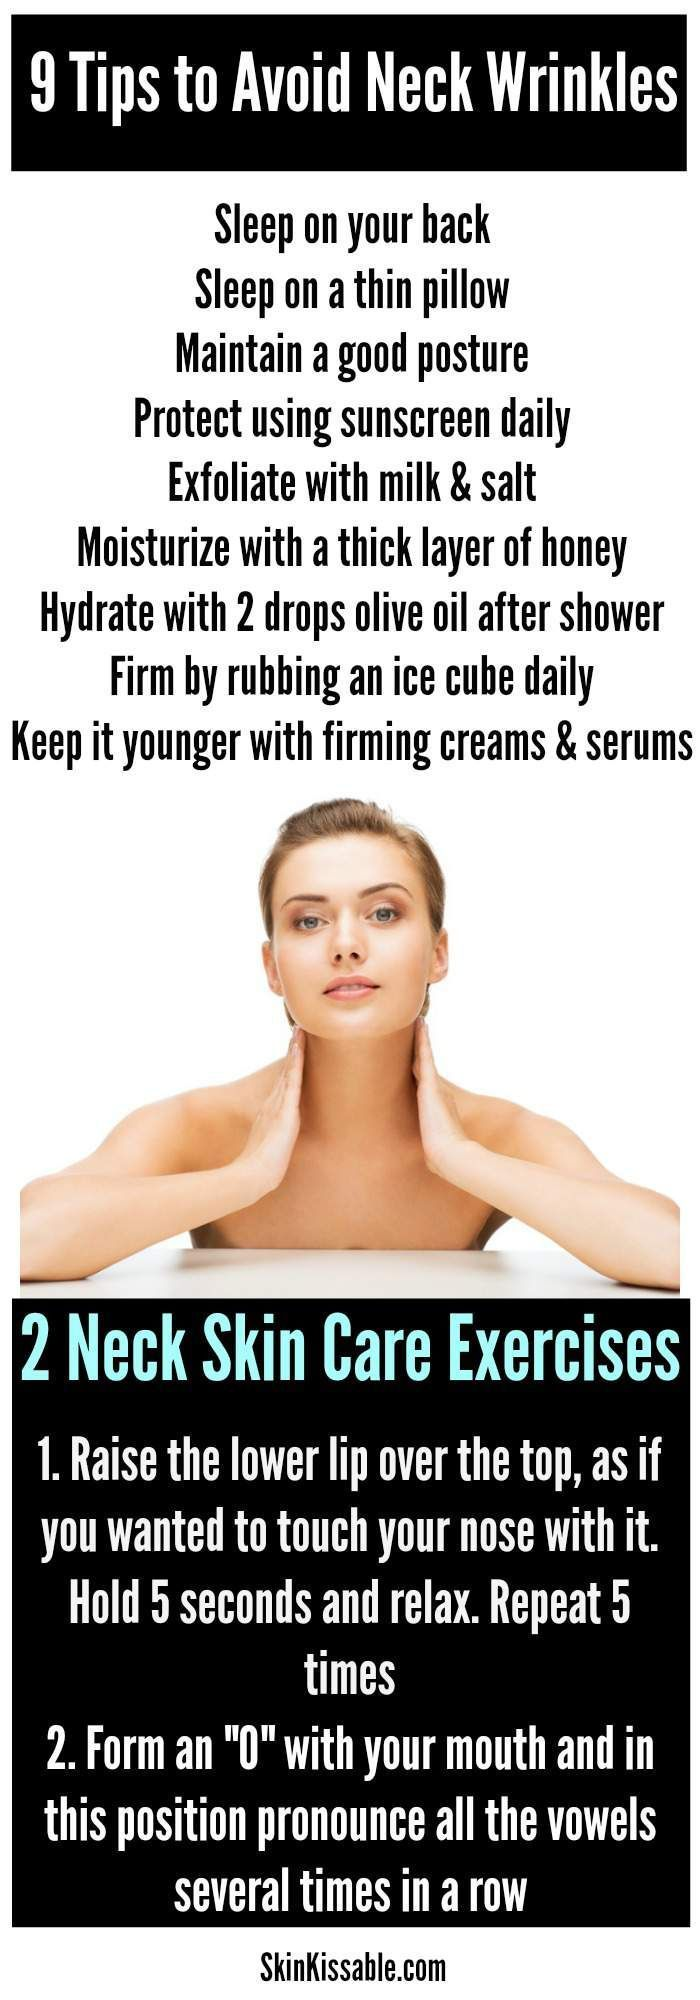 How to Prevent Neck & Chest Wrinkles Without Surgery (12 Proven Tips)